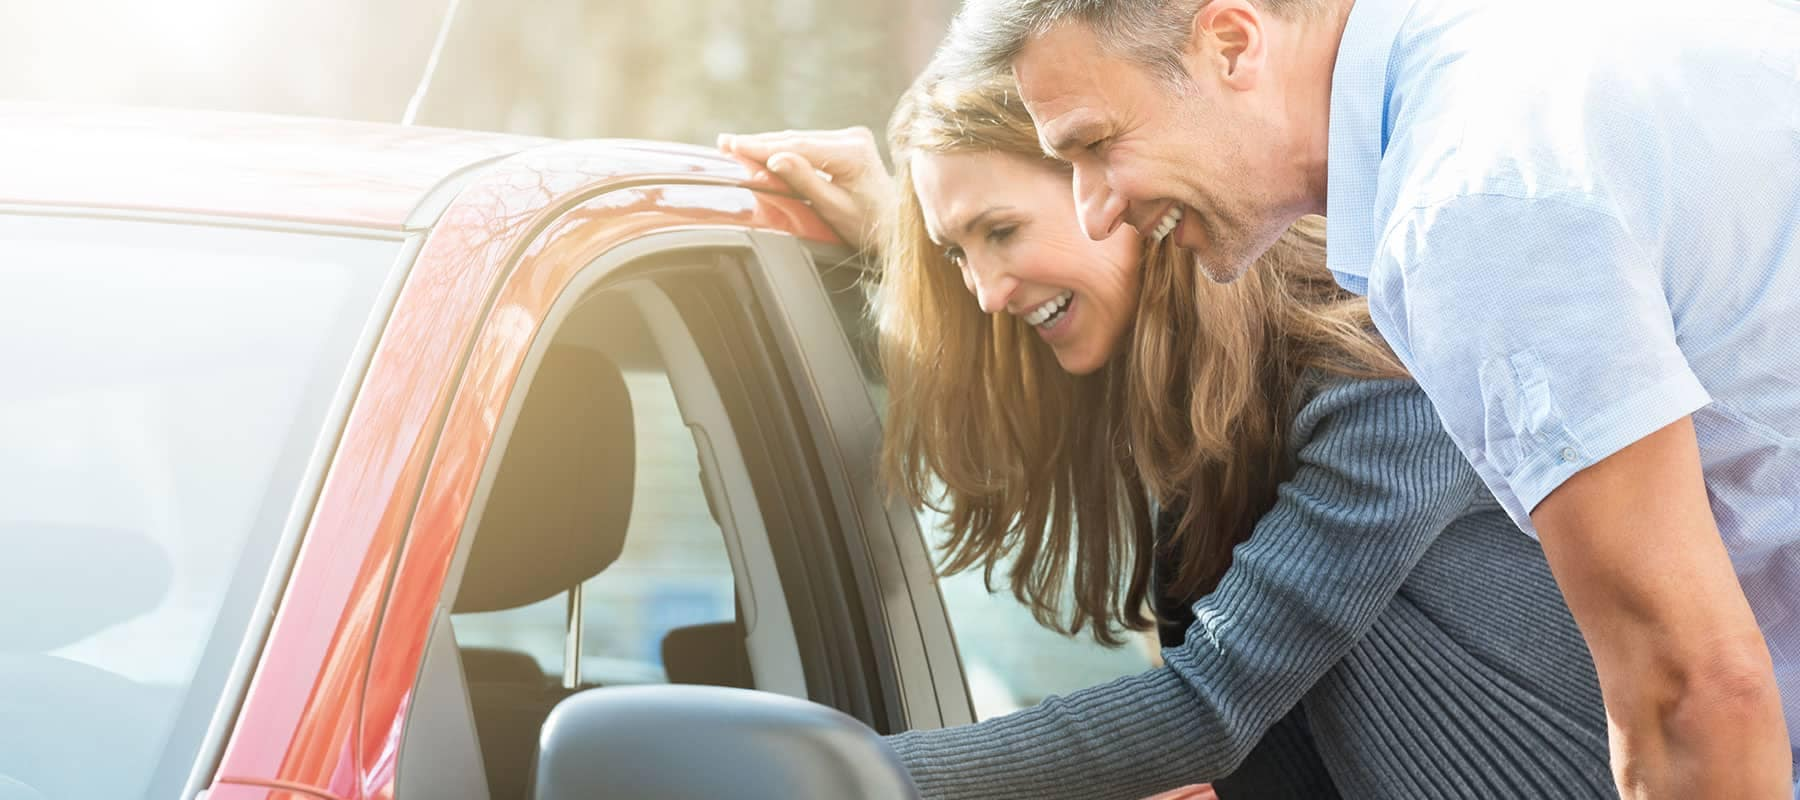 Couple looking at used car